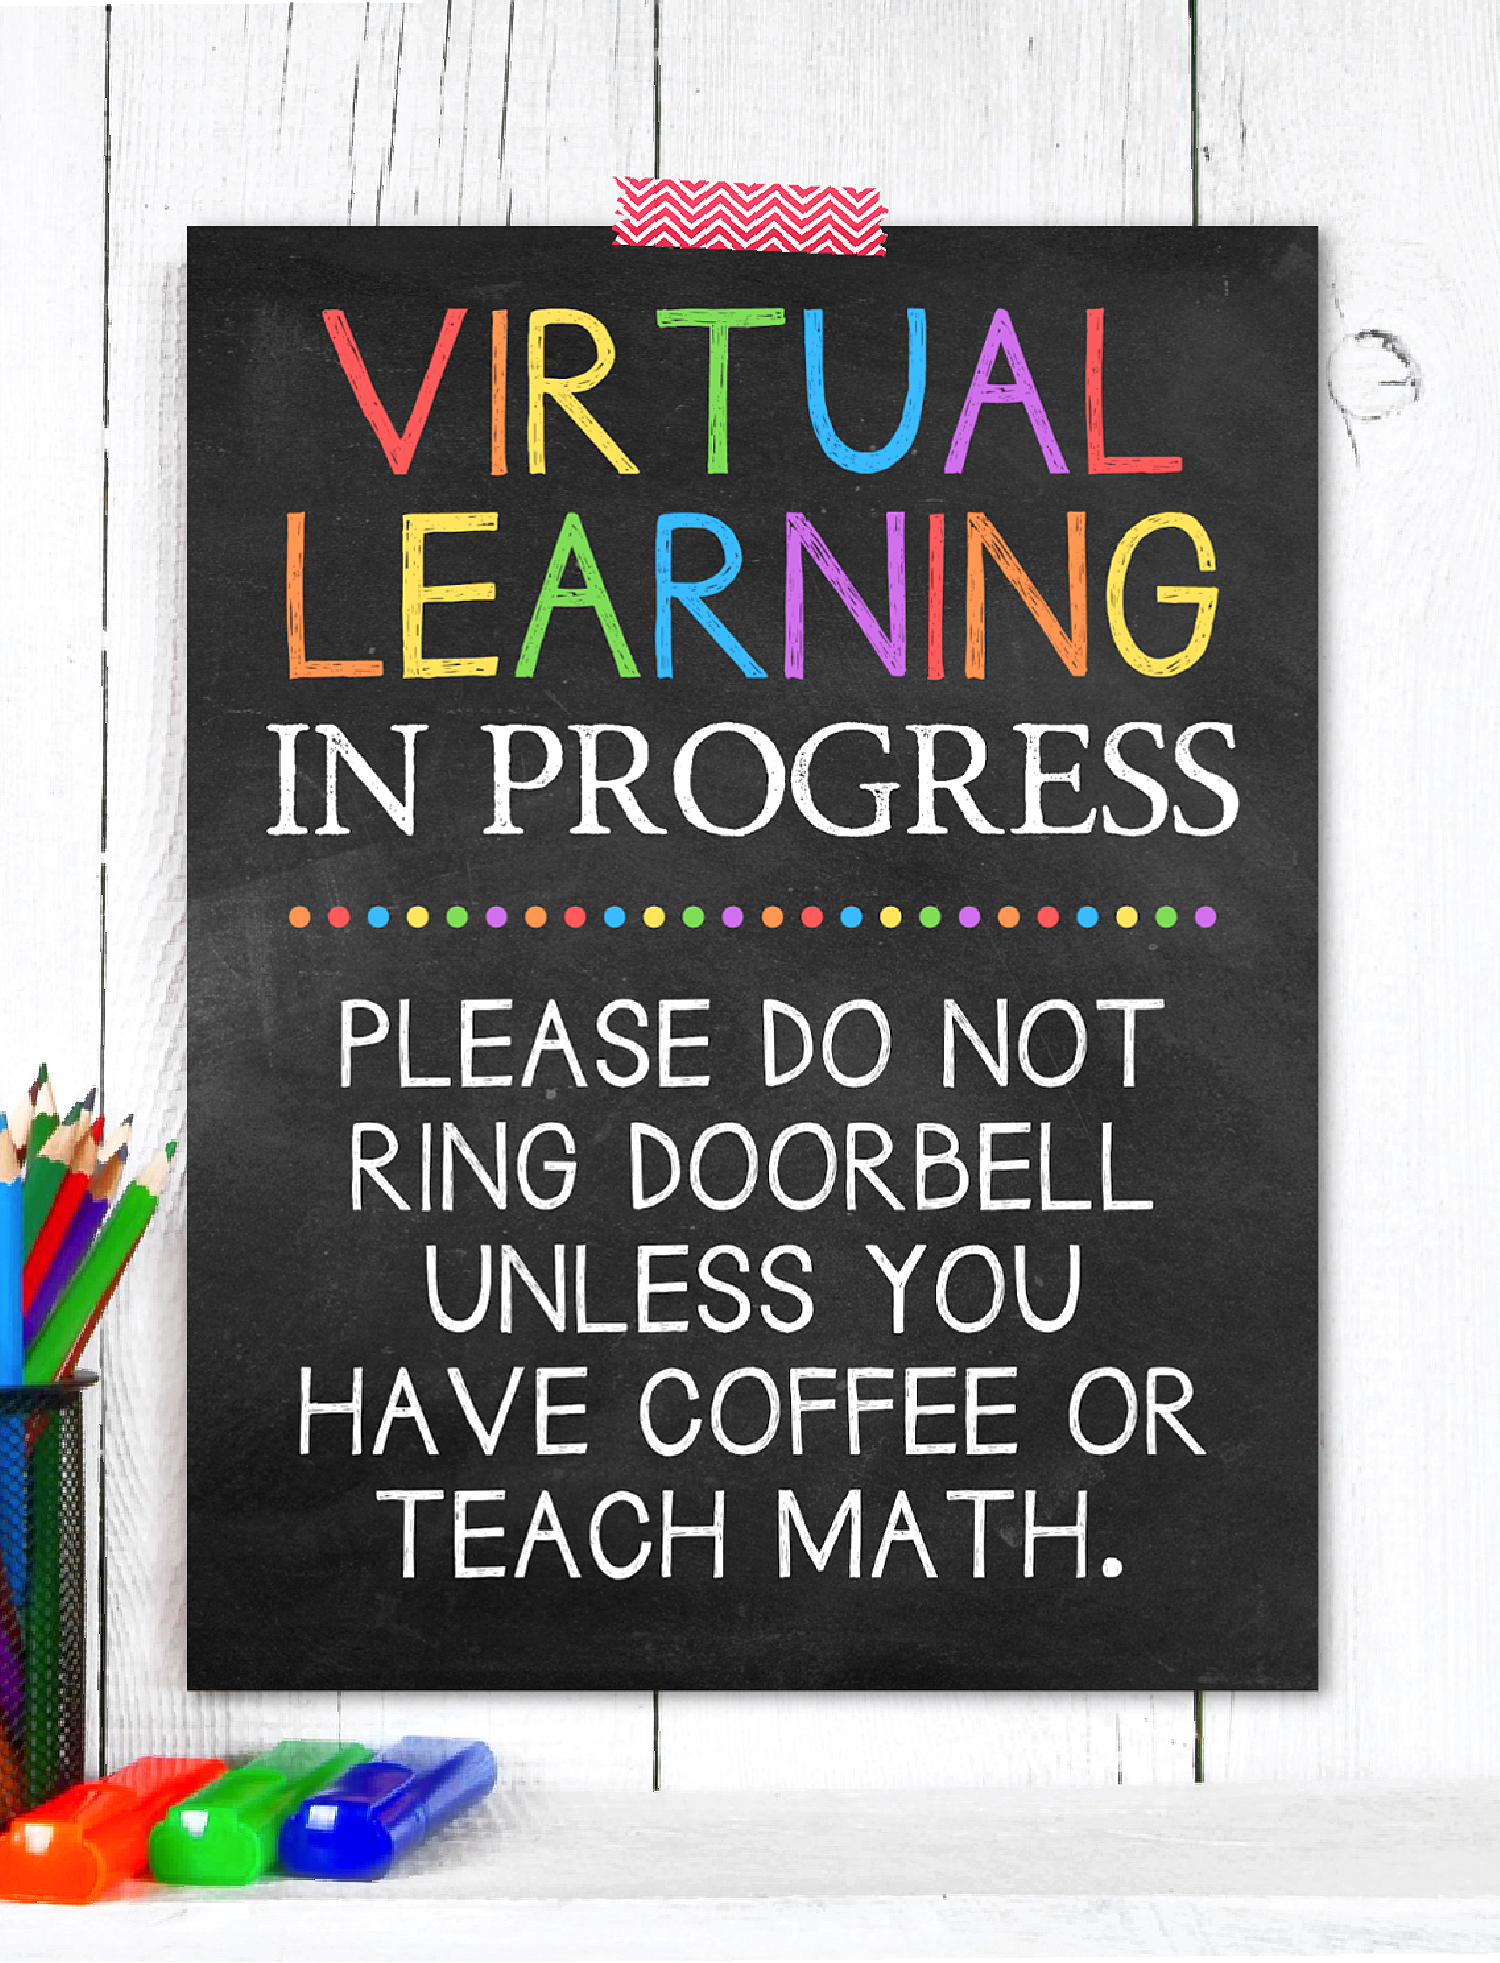 Virtual Learning in Progress Sign on Wall